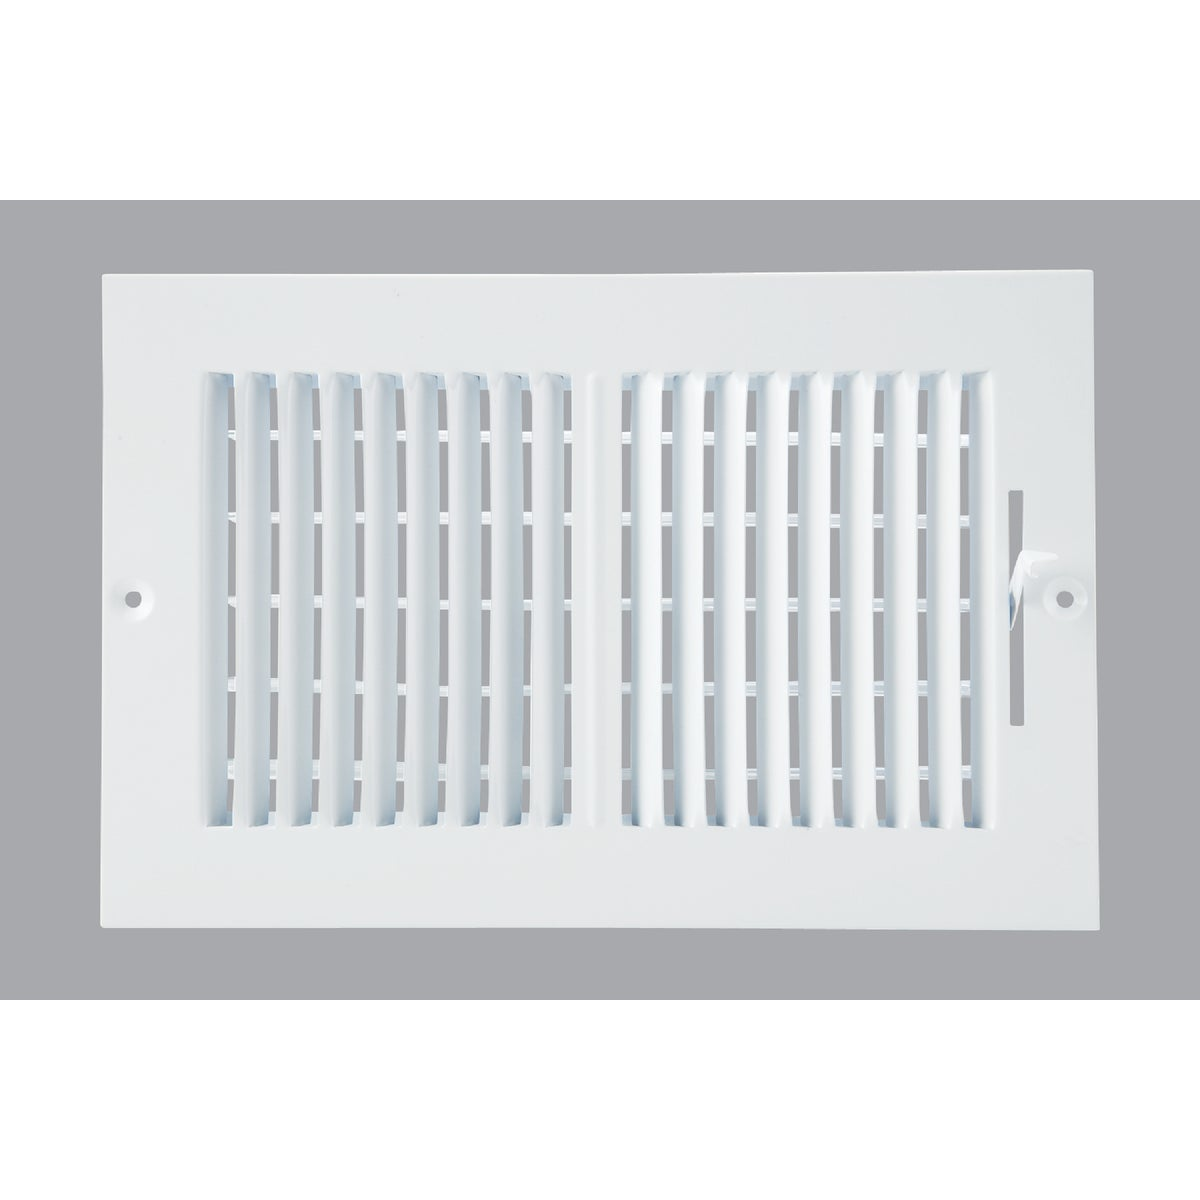 Home Impression 2-Way Wall Register, 2SW1006WH-B